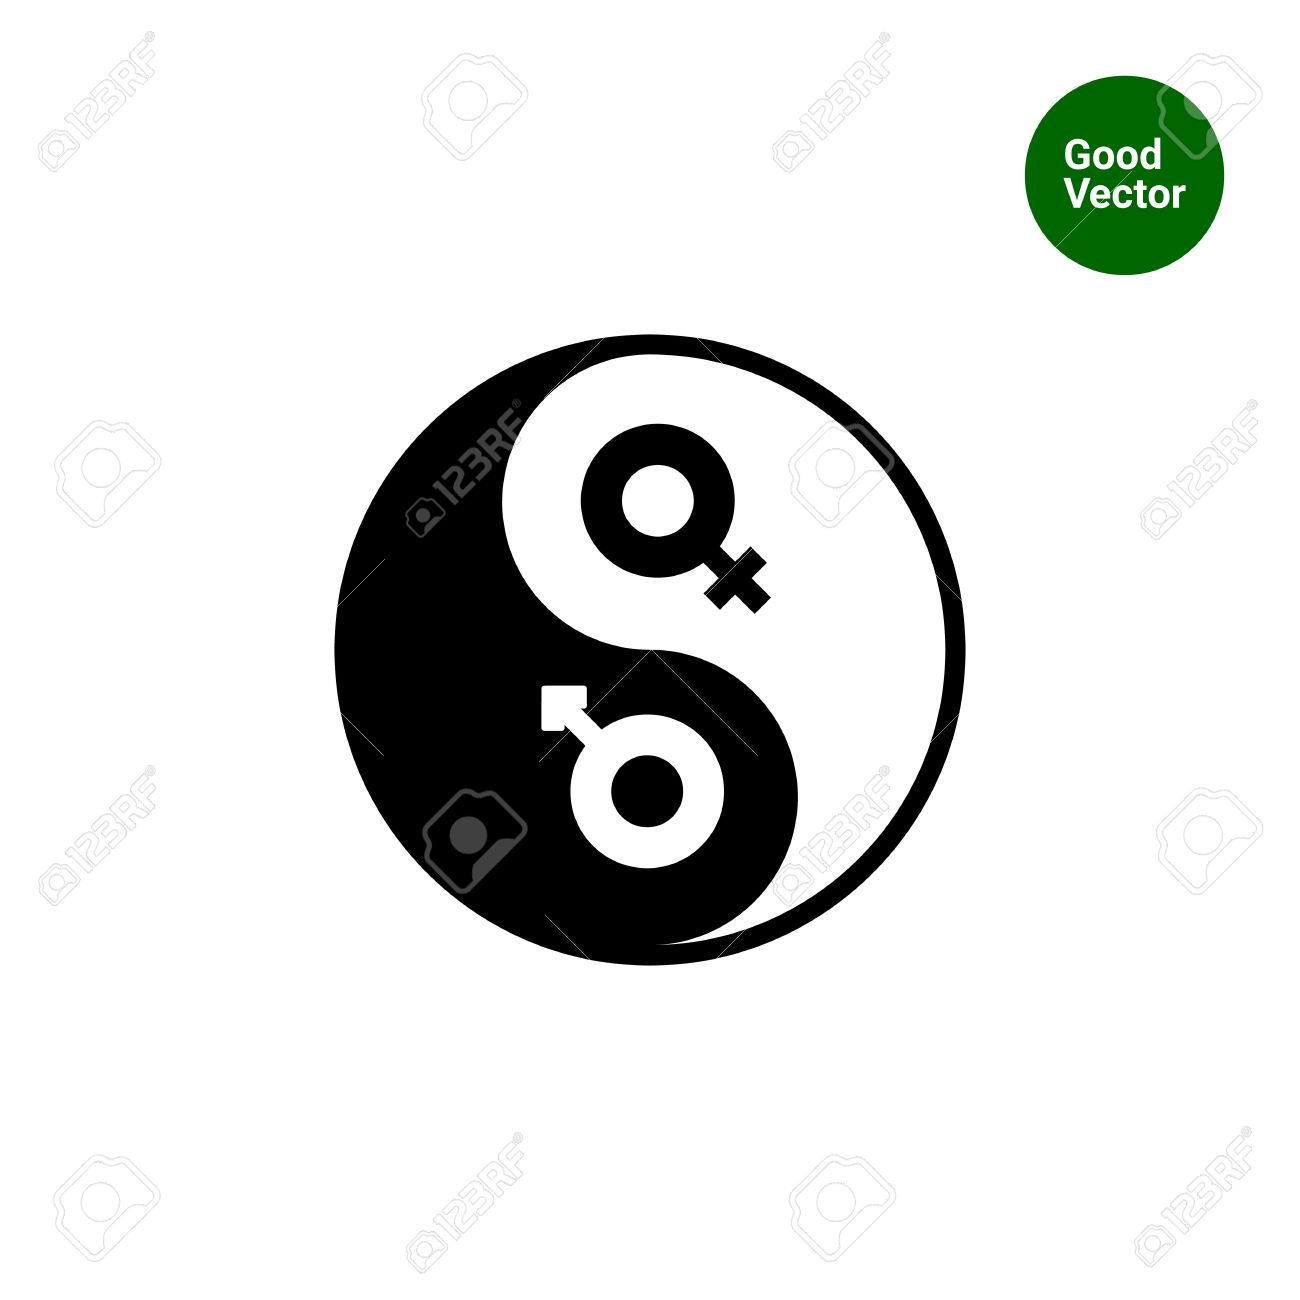 Vector Icon Of Yin Yang Symbol With Male And Female Gender Signs